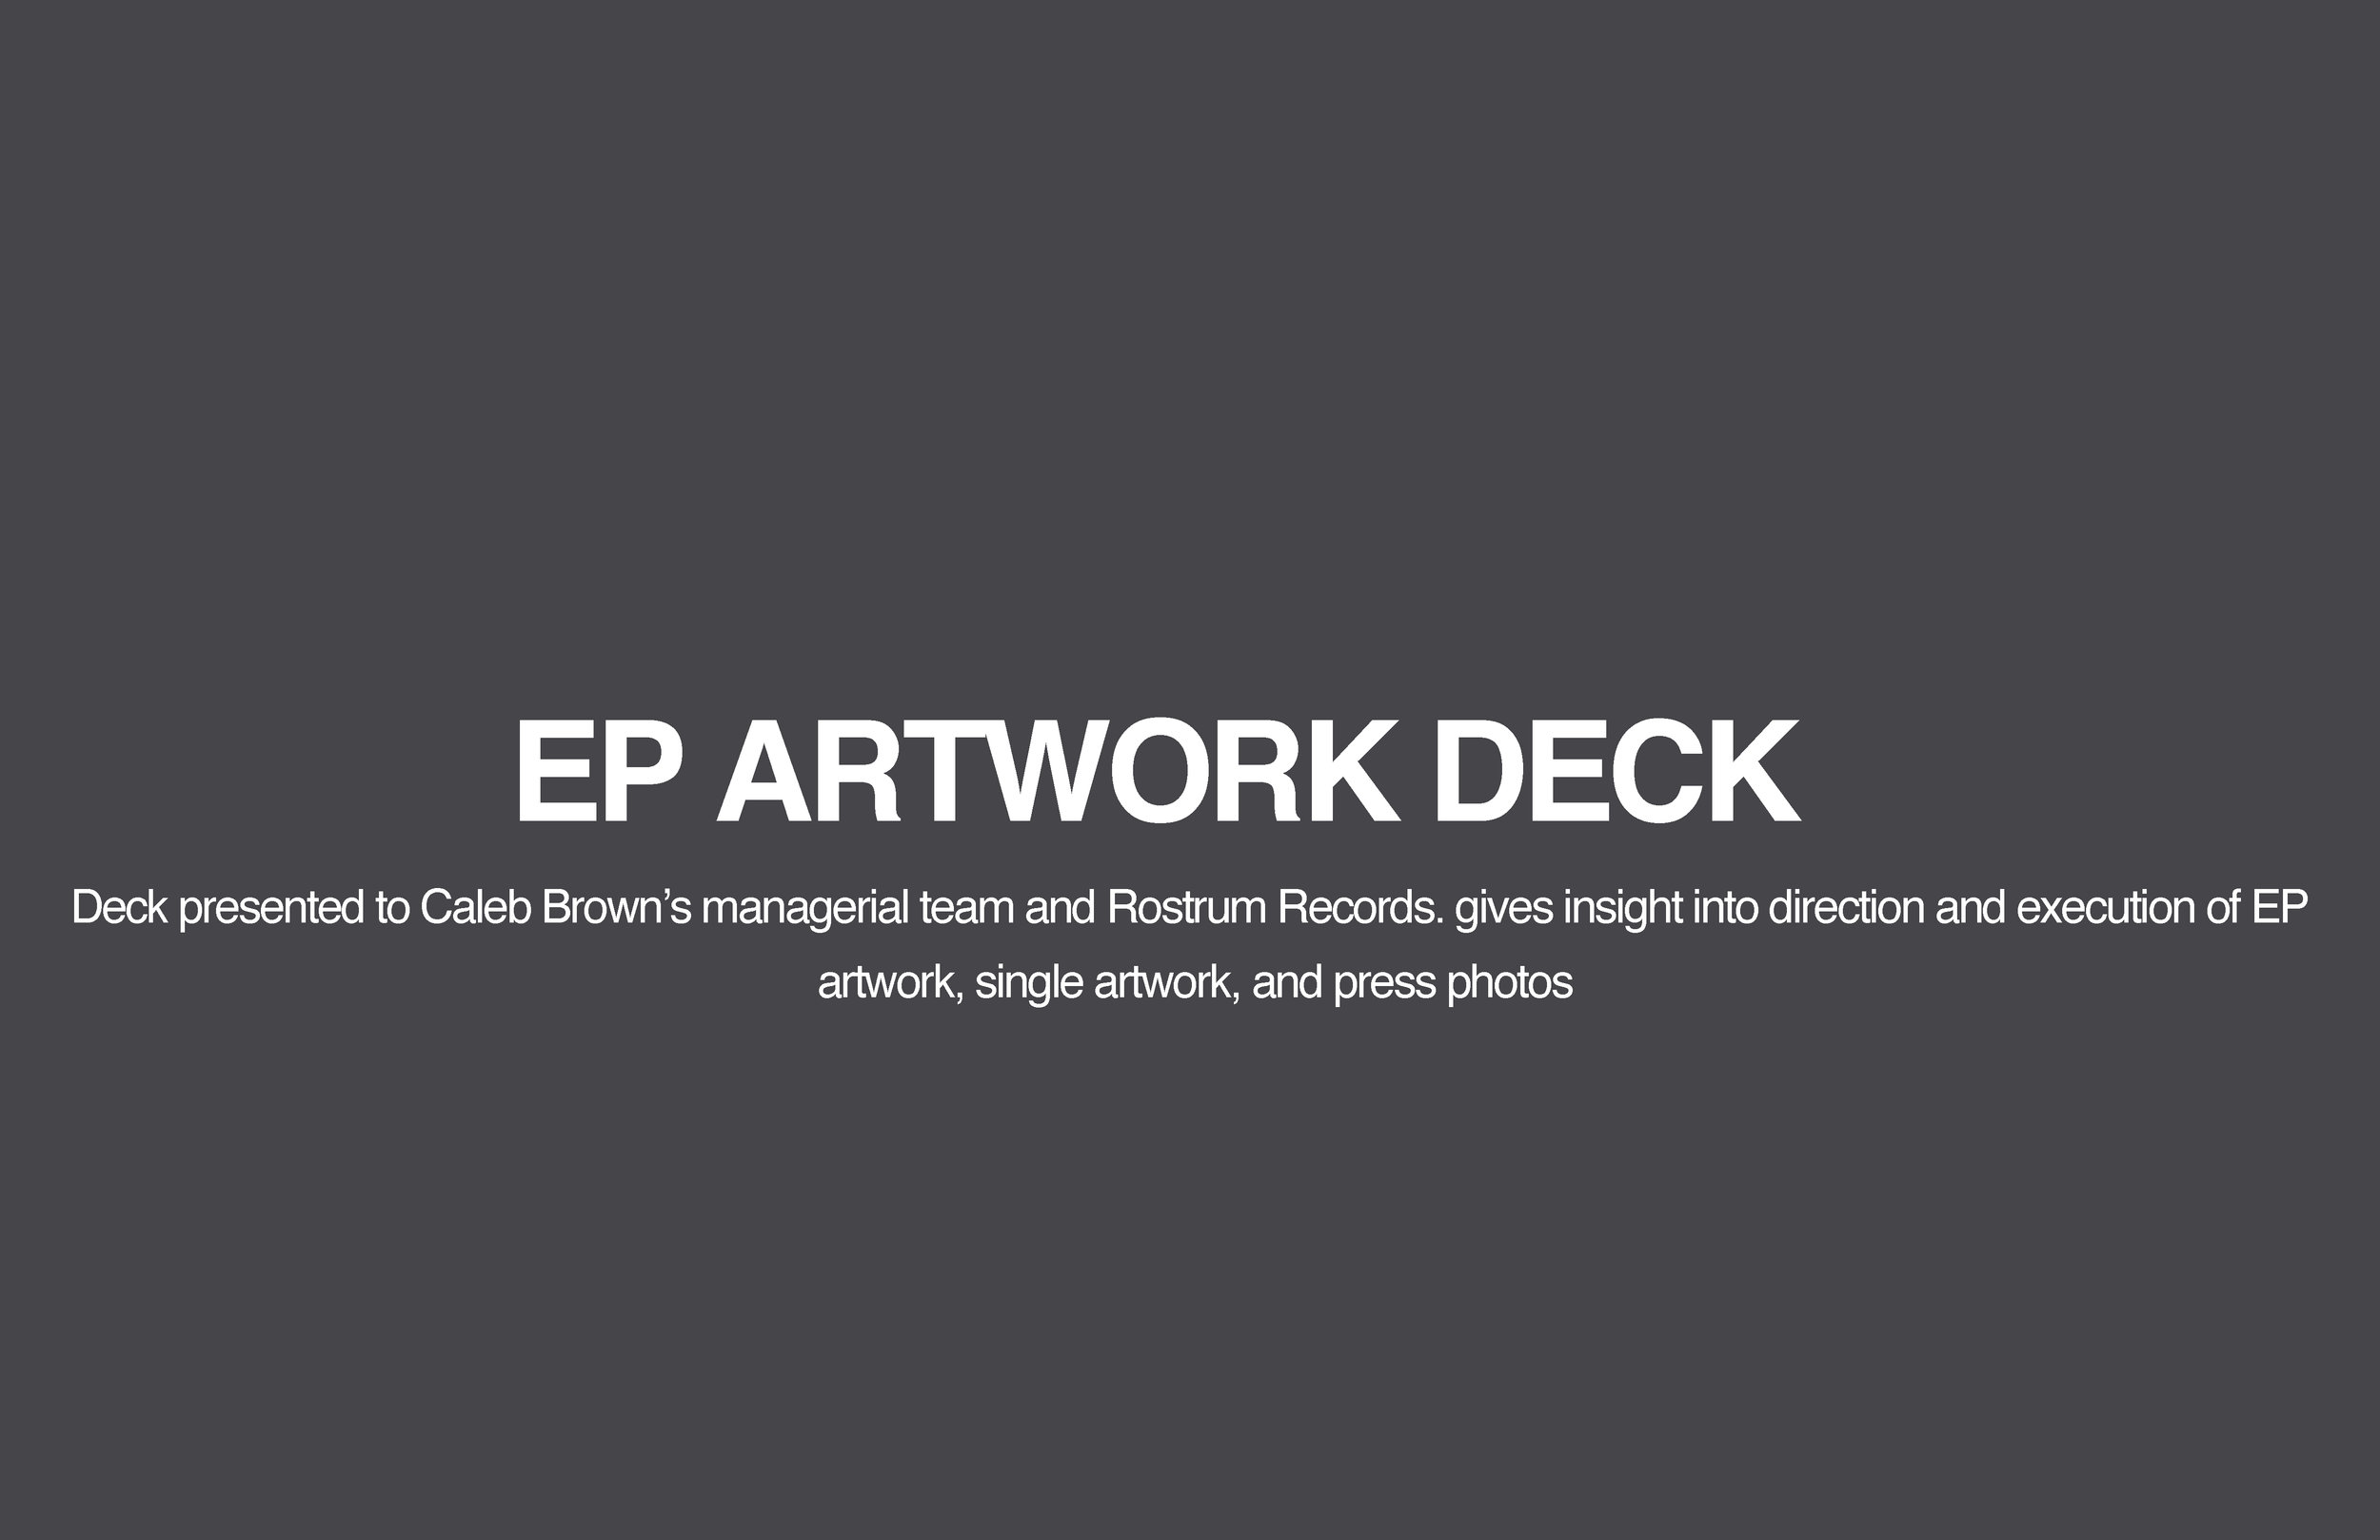 EP ARTWORK DECK-3.jpg